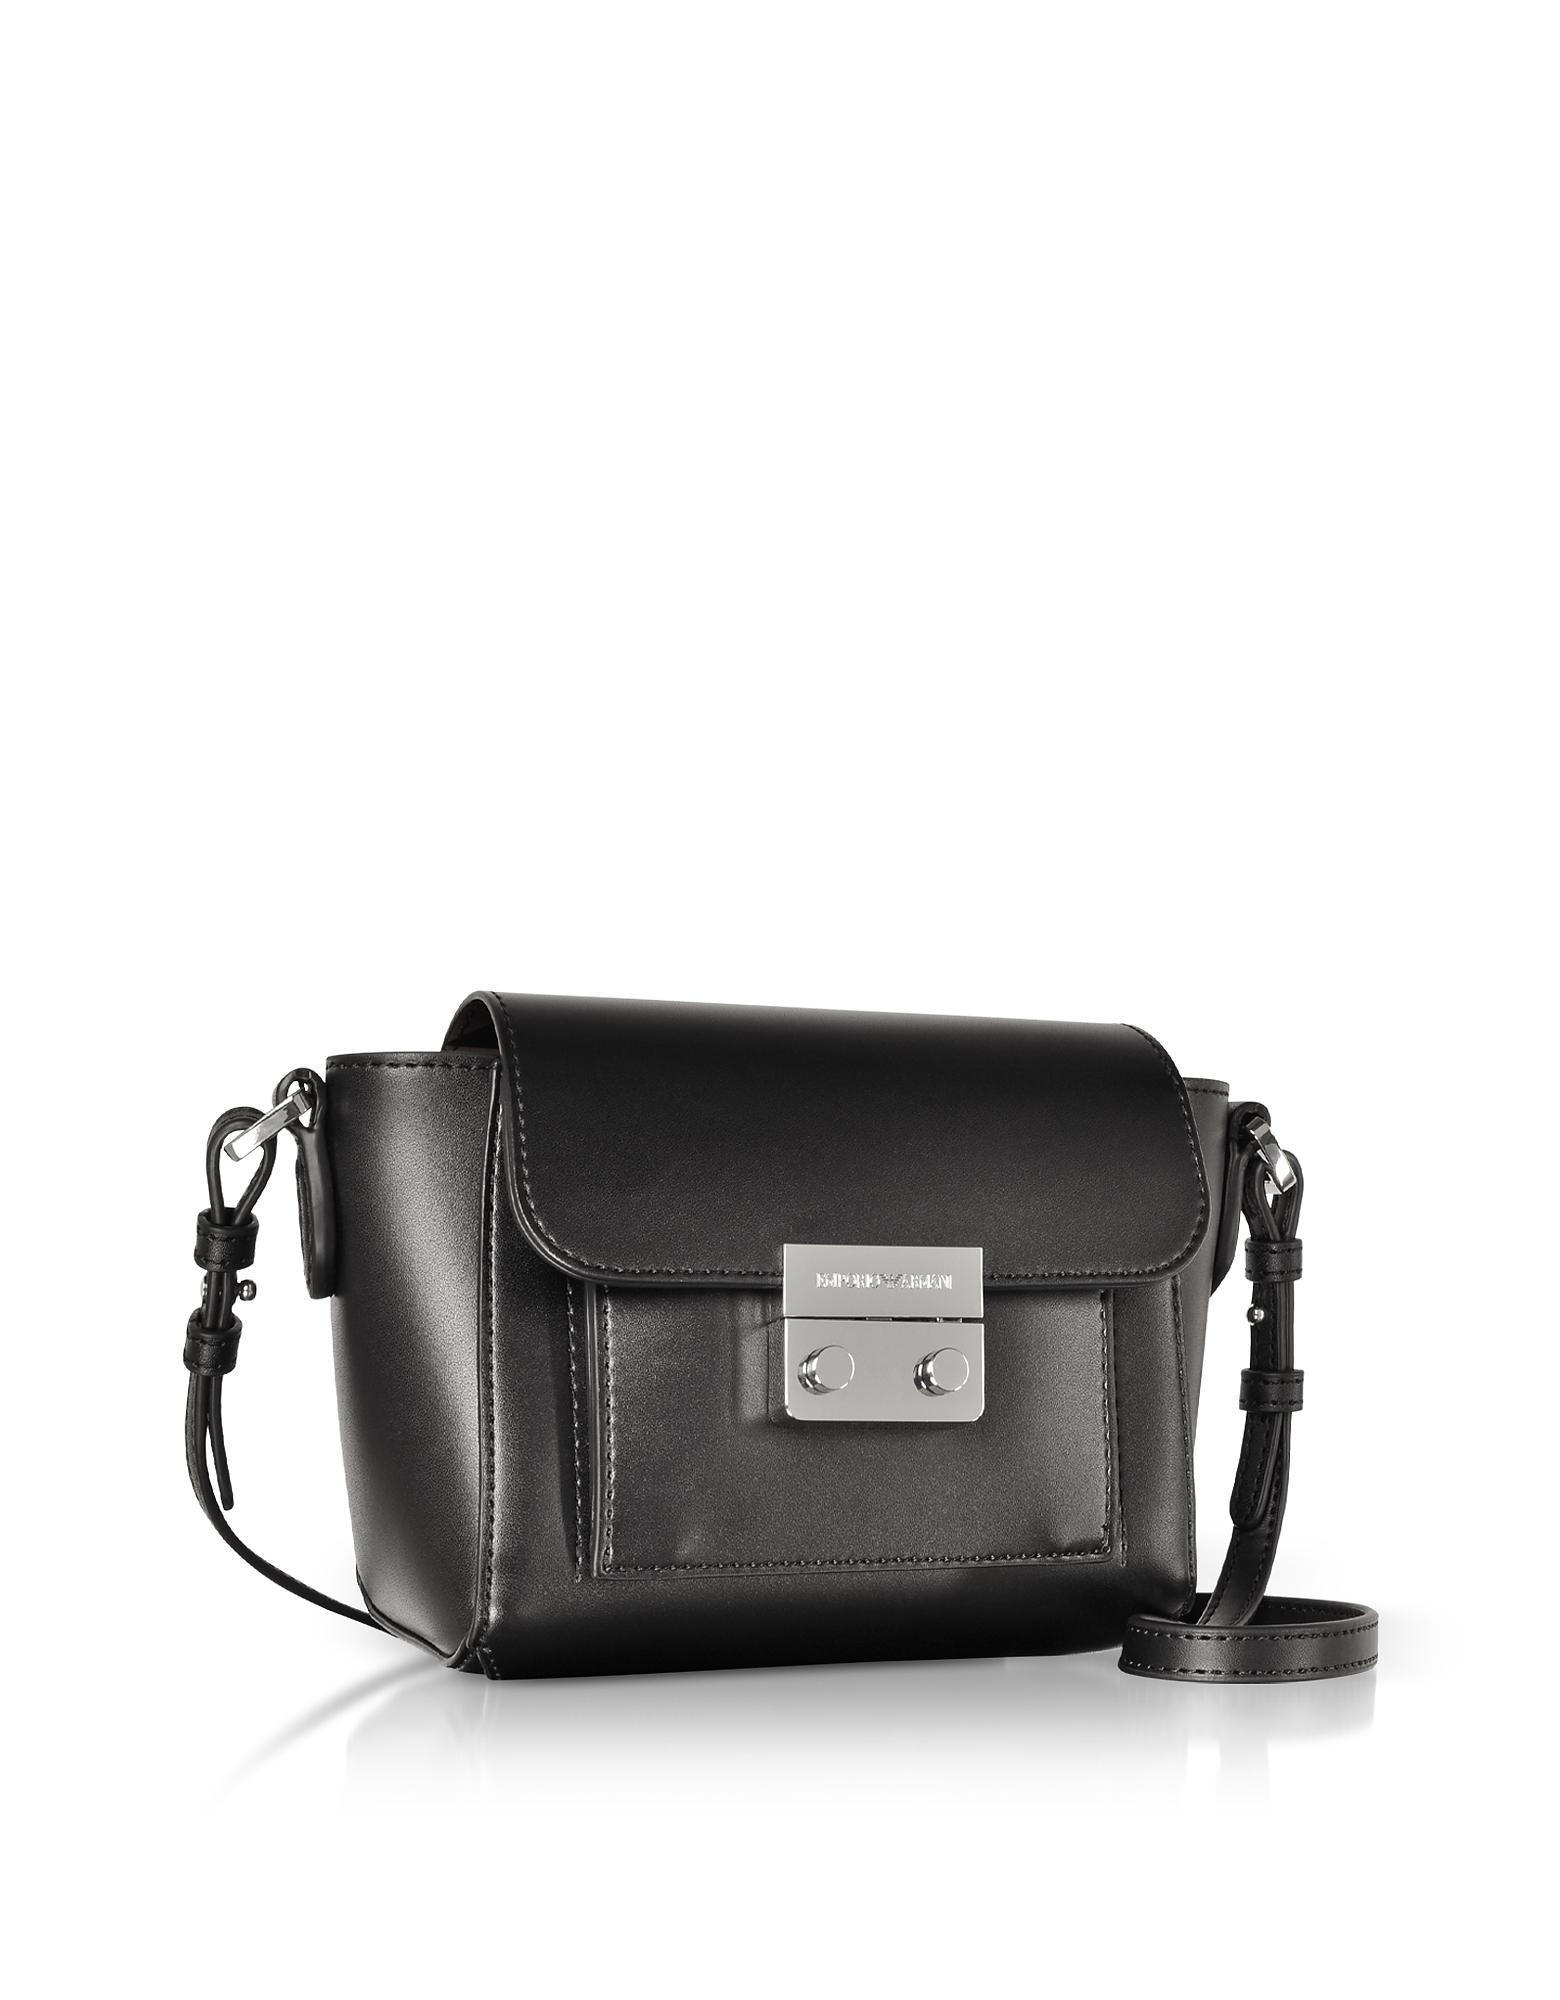 c8540ce4f0e Lyst - Emporio Armani Small Smooth Eco Leather Shoulder Bag in Black